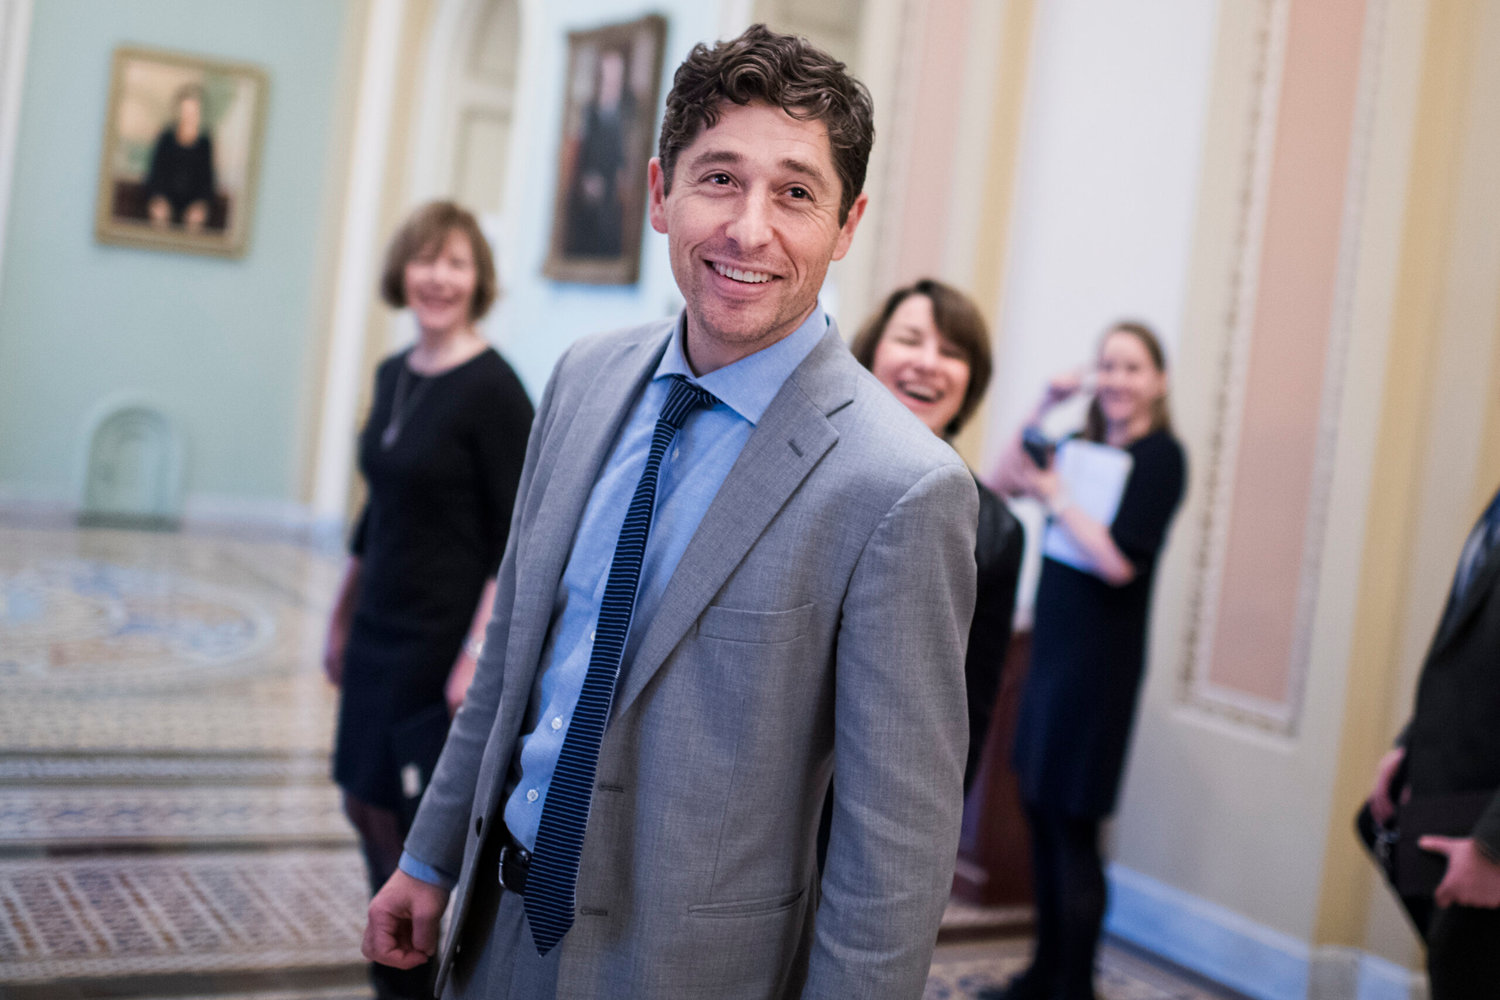 UNITED STATES - JANUARY 24: Minneapolis Mayor Jacob Frey takes  a tour of Capitol with Sens. Amy Klobuchar, D-Minn., right, and Tina Smith, D-Minn., on Thursday, January 24, 2019. (Photo By Tom Williams/CQ Roll Call)